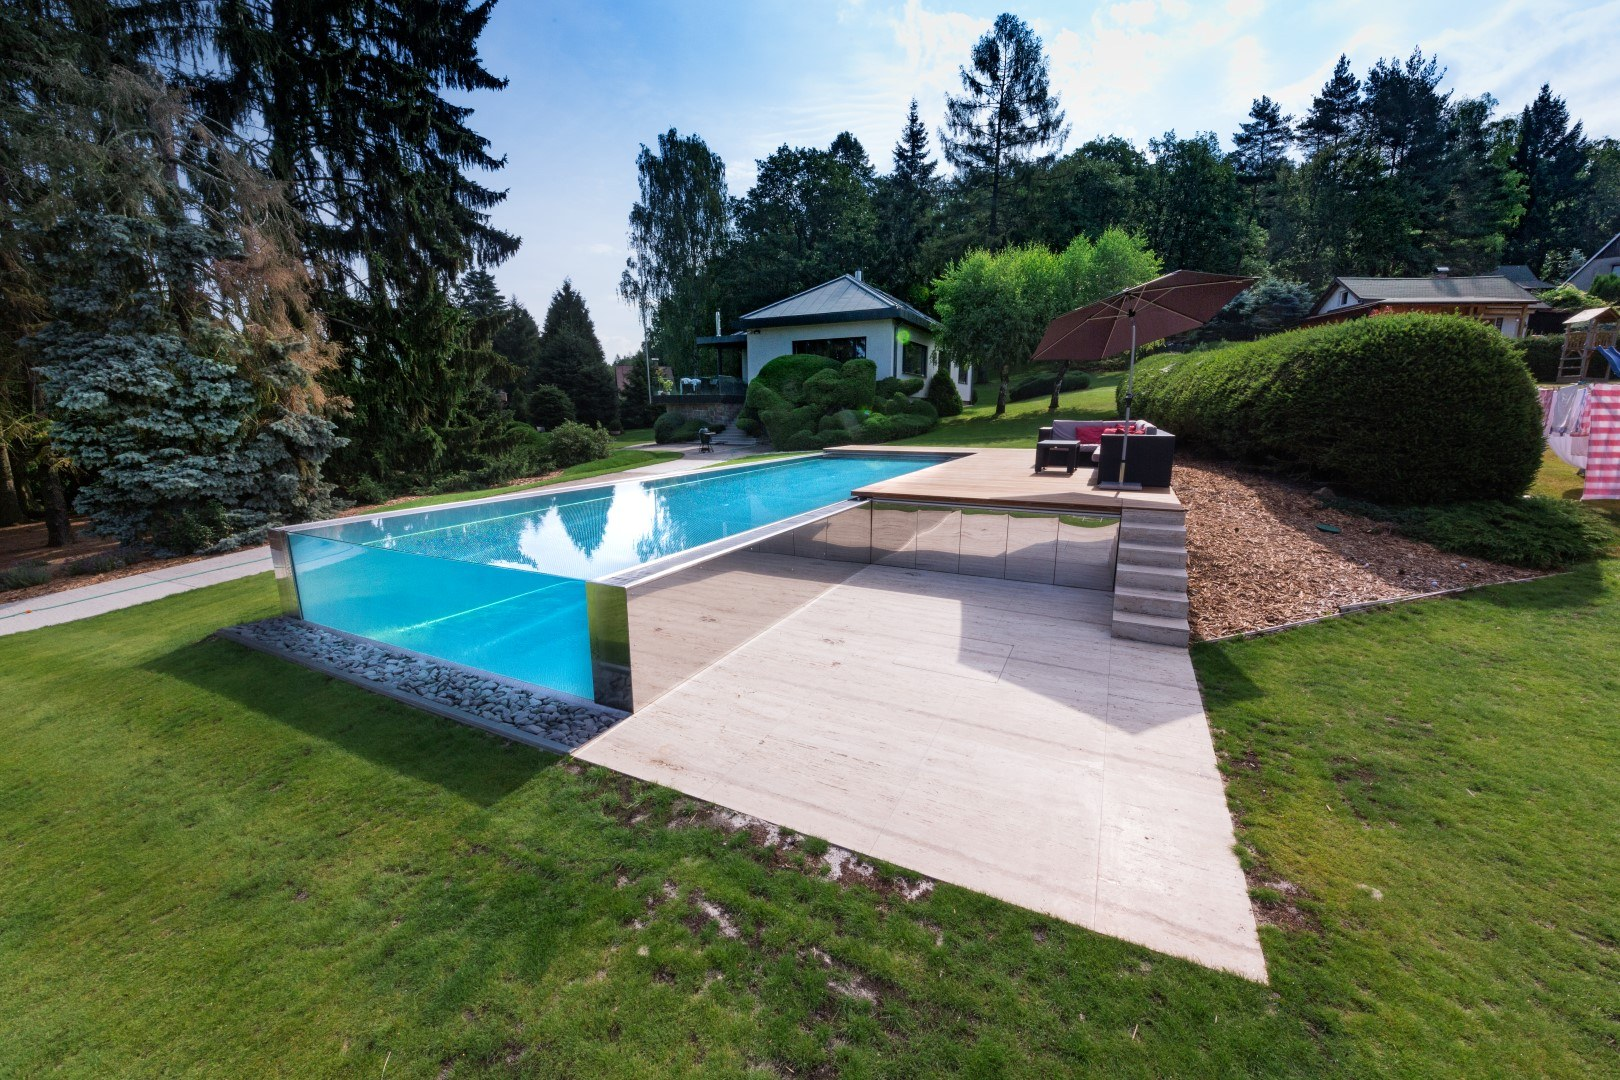 Aquarine Spa Luxury Pools Sale And Turnkey Production And Implementation